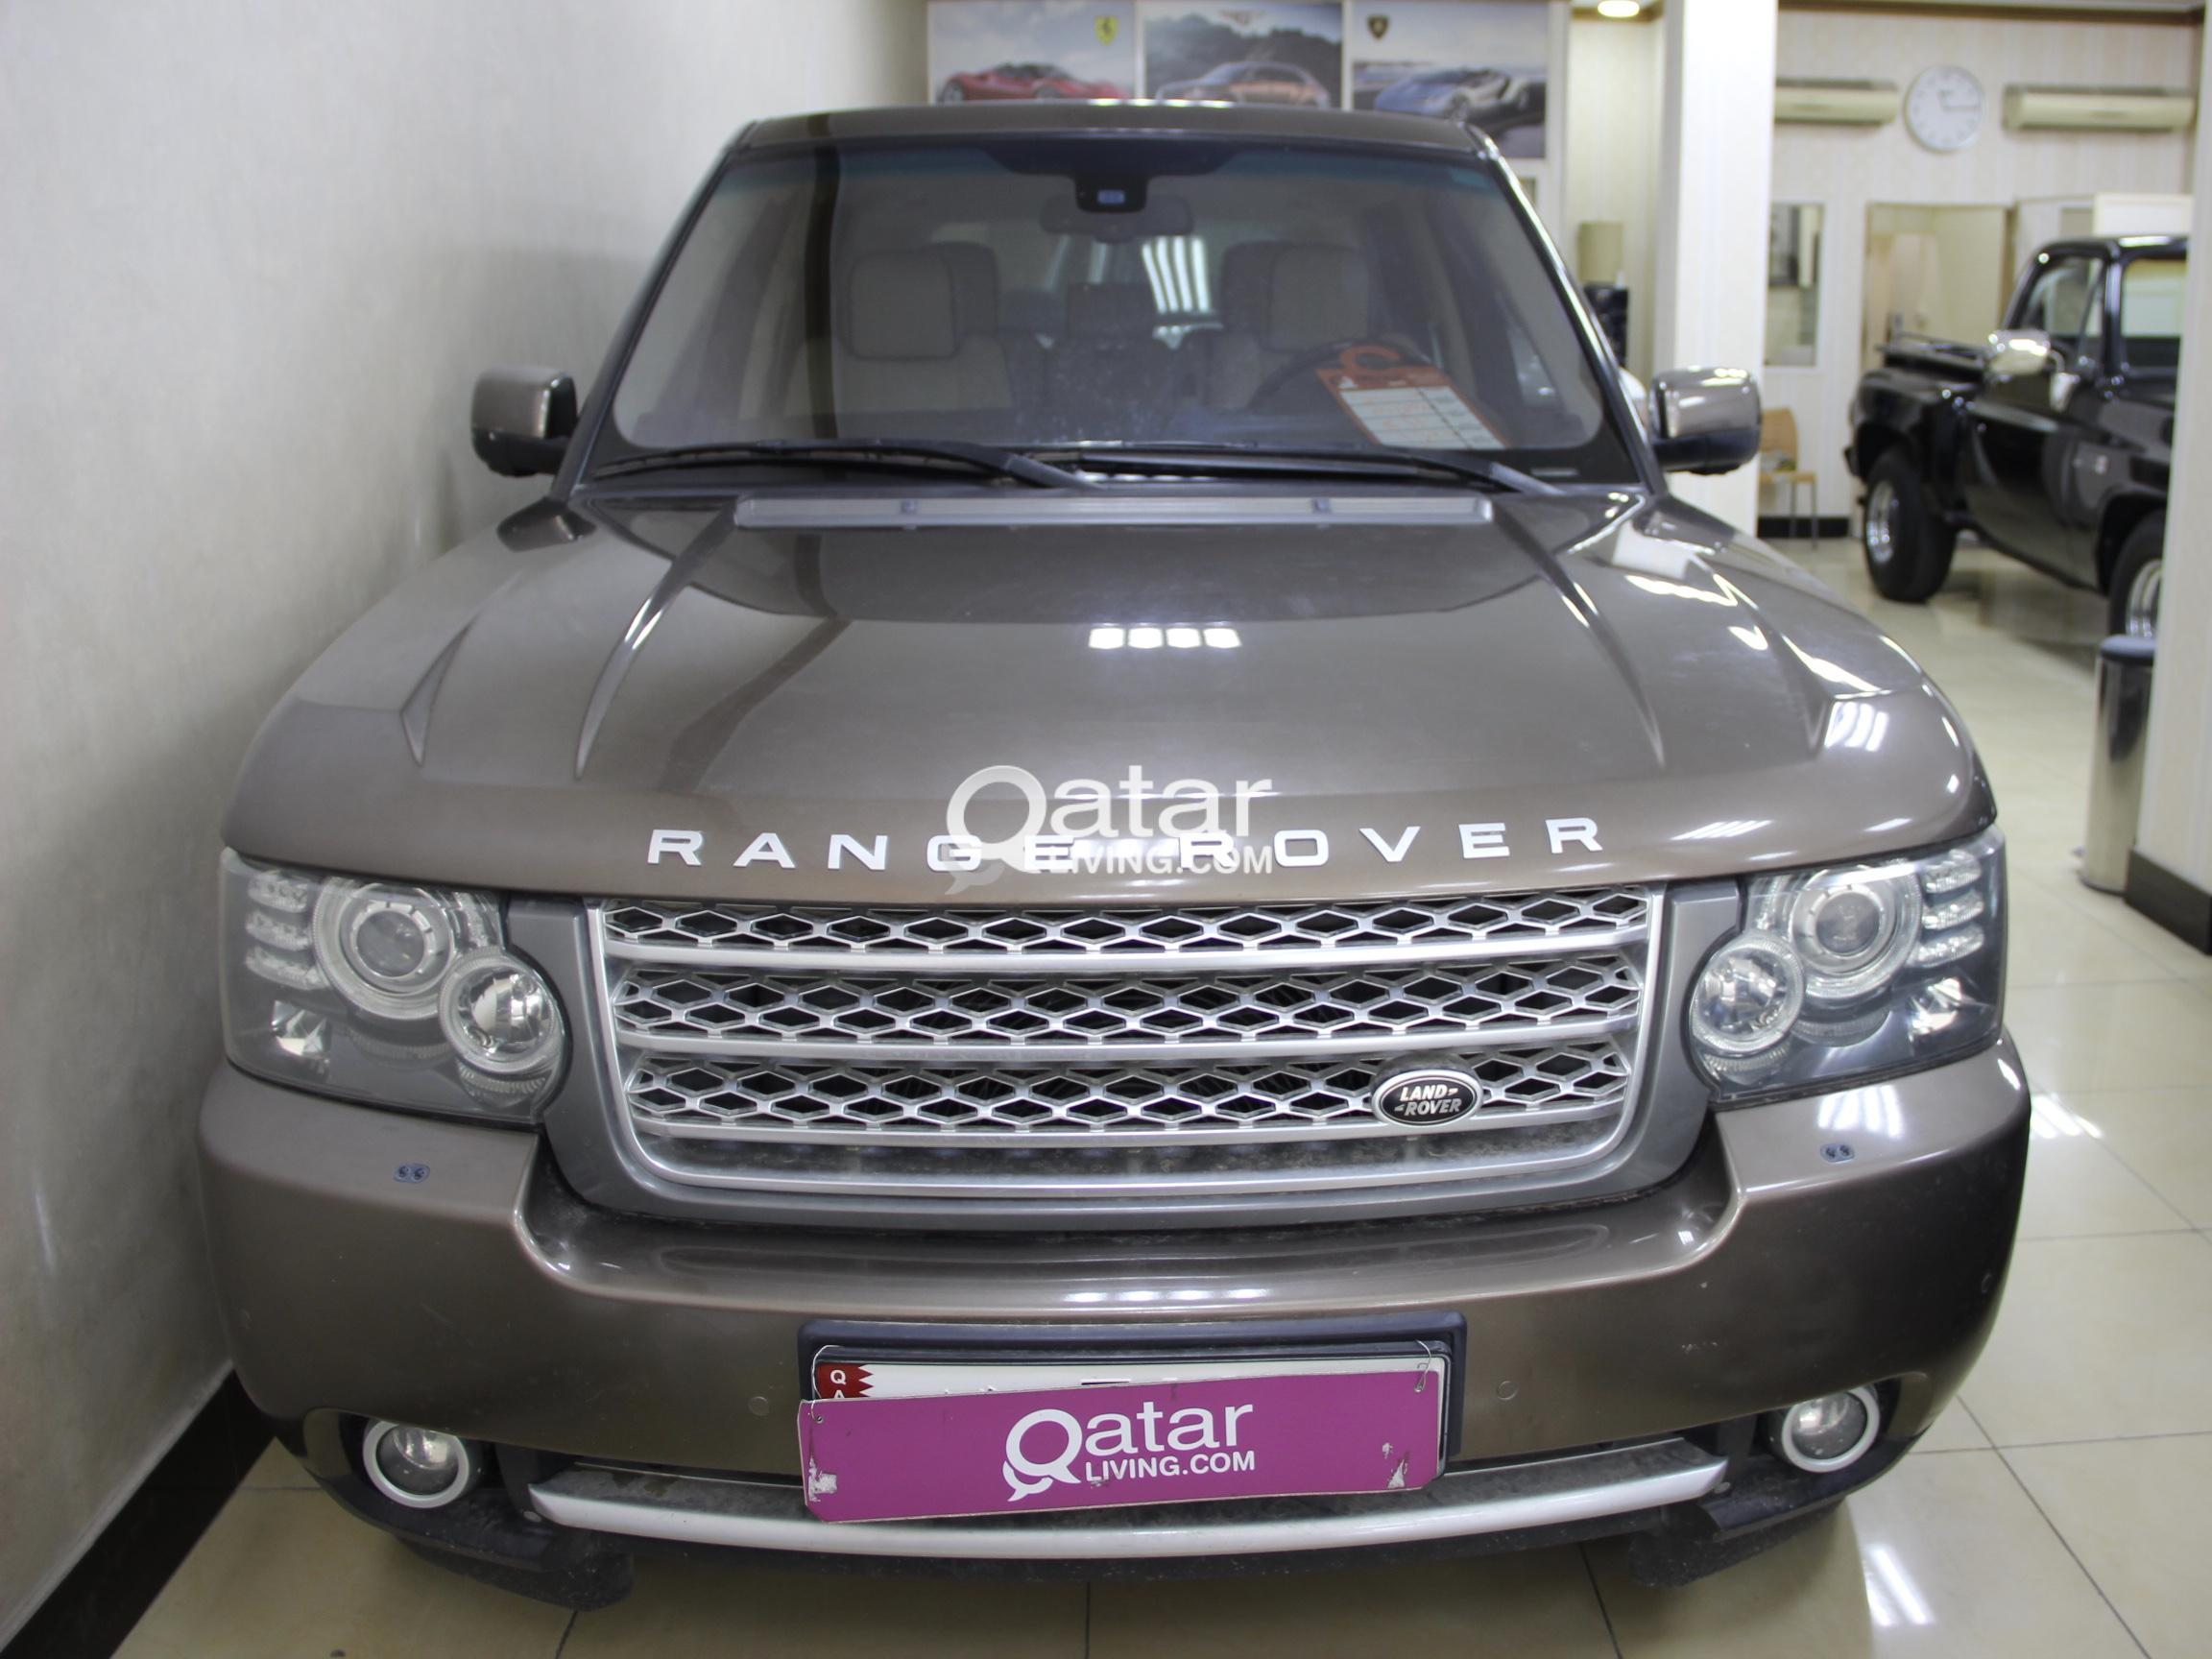 features vehicle sale rover options landrover overview for motors specifications shoneez other land listings technical comments